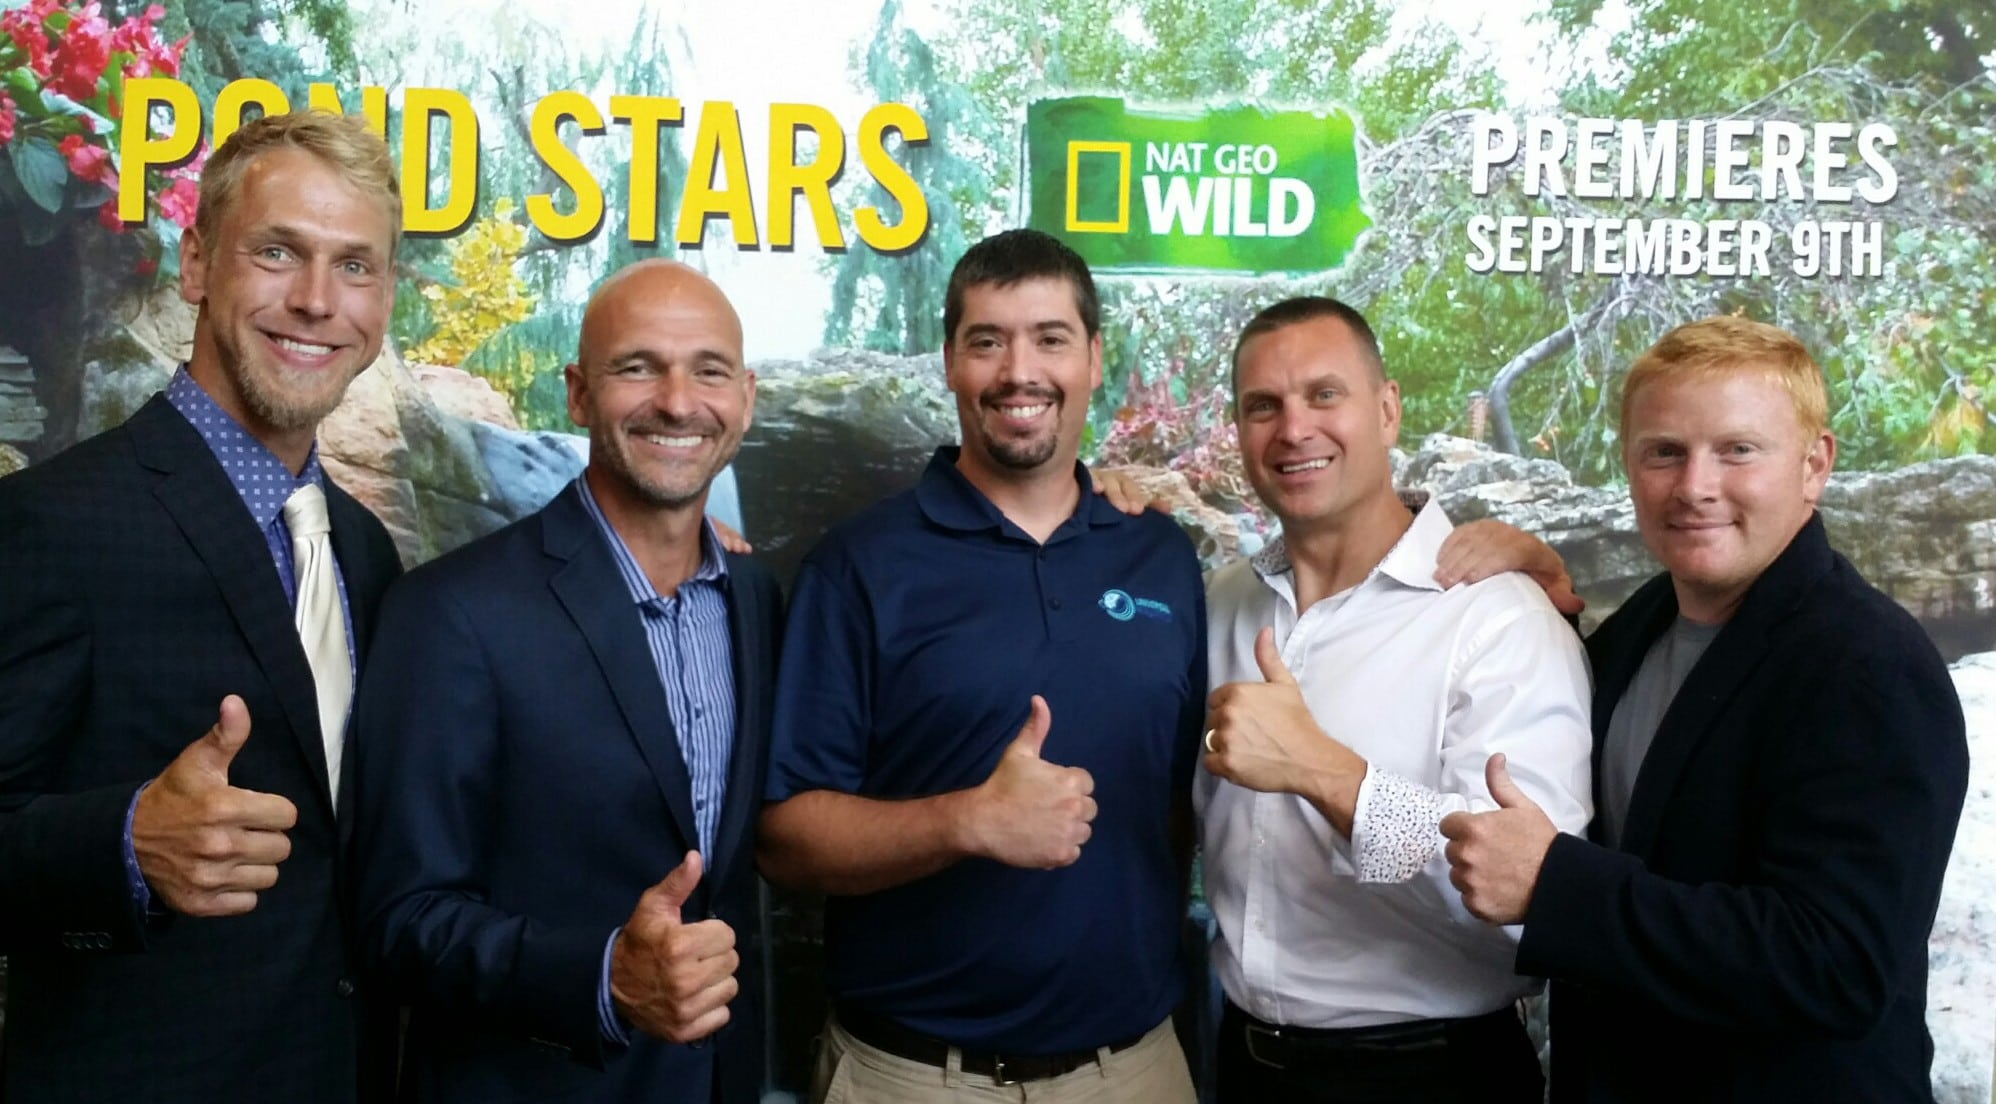 Pond Stars on Nat Geo Wild